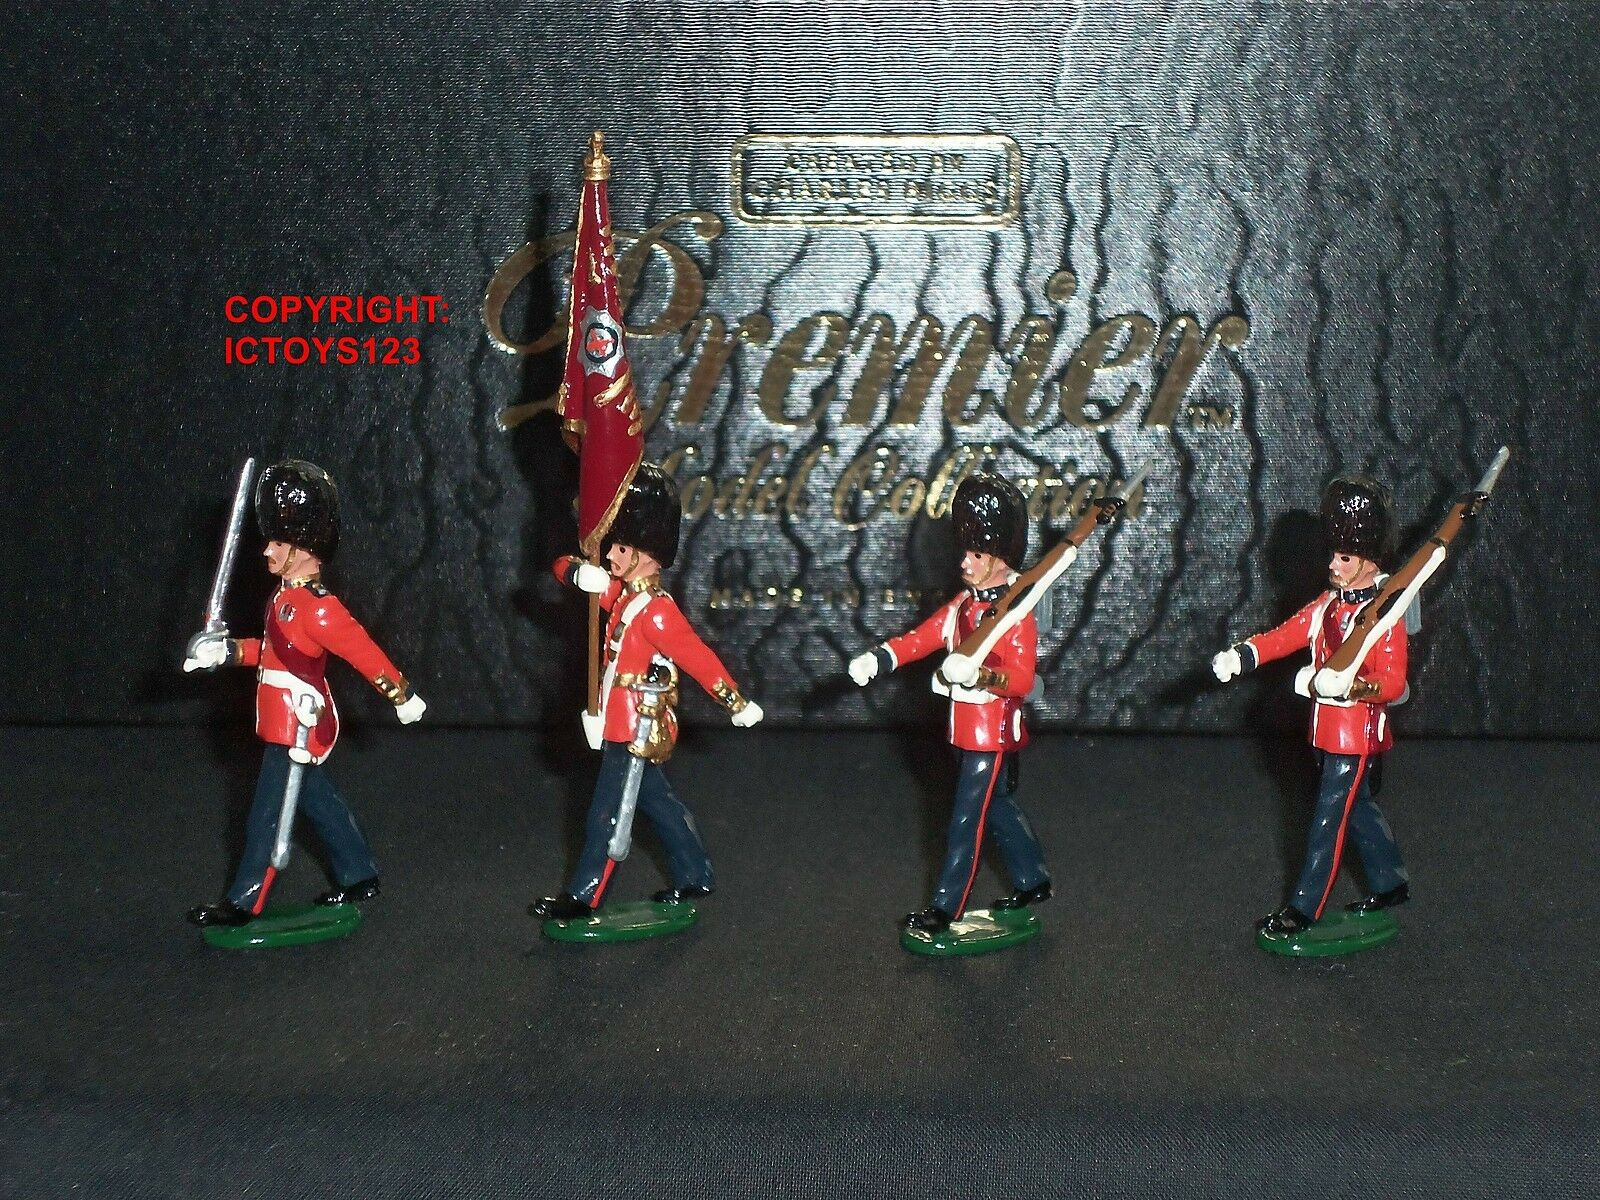 CHARLES BIGGS PREMIER 9902 COLDSTREAM GUARDS COLOUR PARTY METAL TOY SOLDIER SET